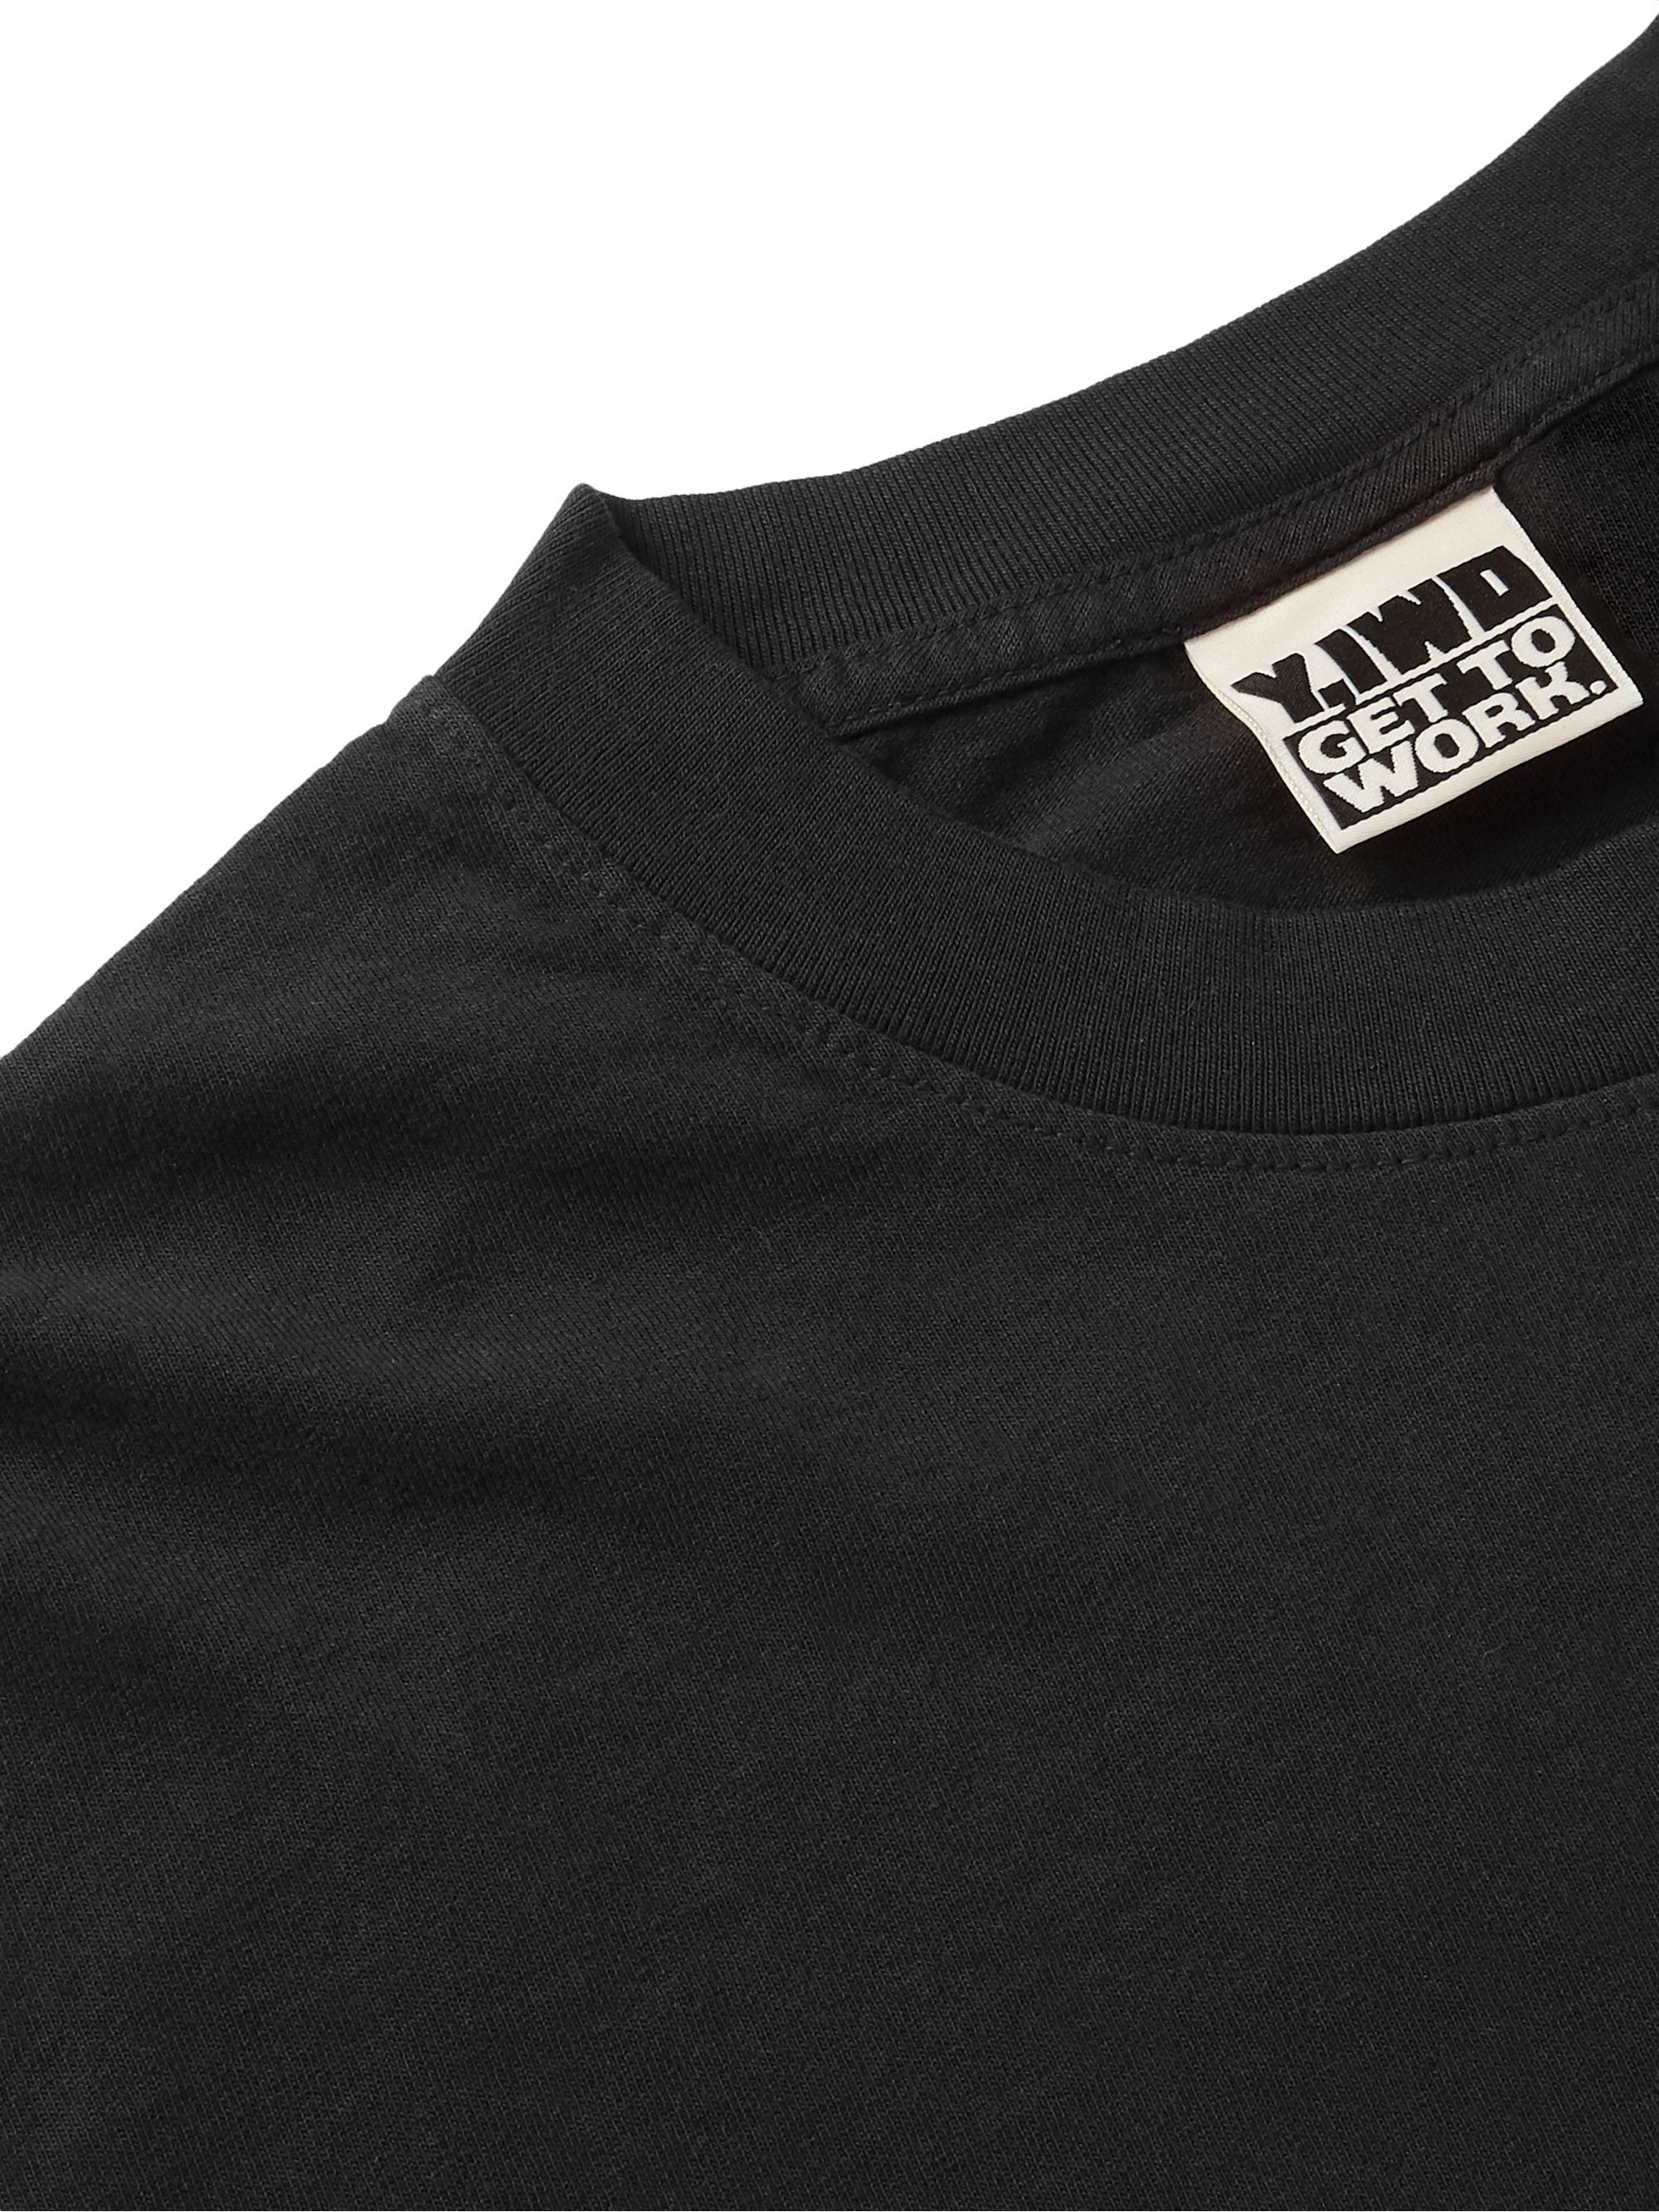 Y,IWO Club Sweat Printed Cotton-Jersey T-Shirt